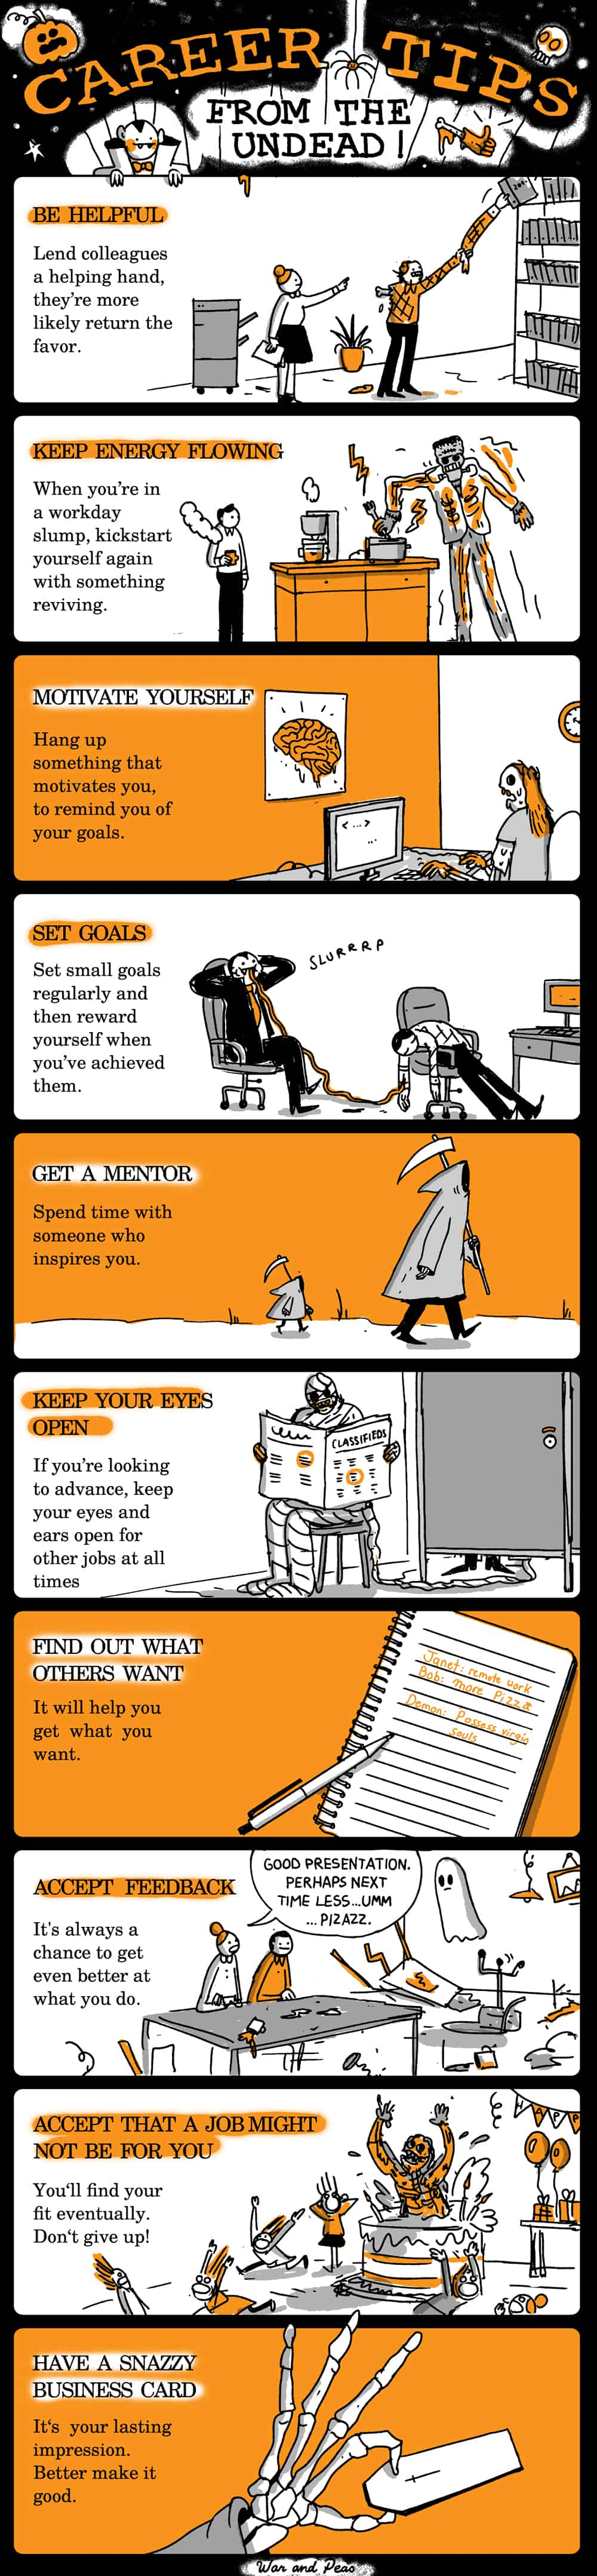 Halloween career tips from the undead